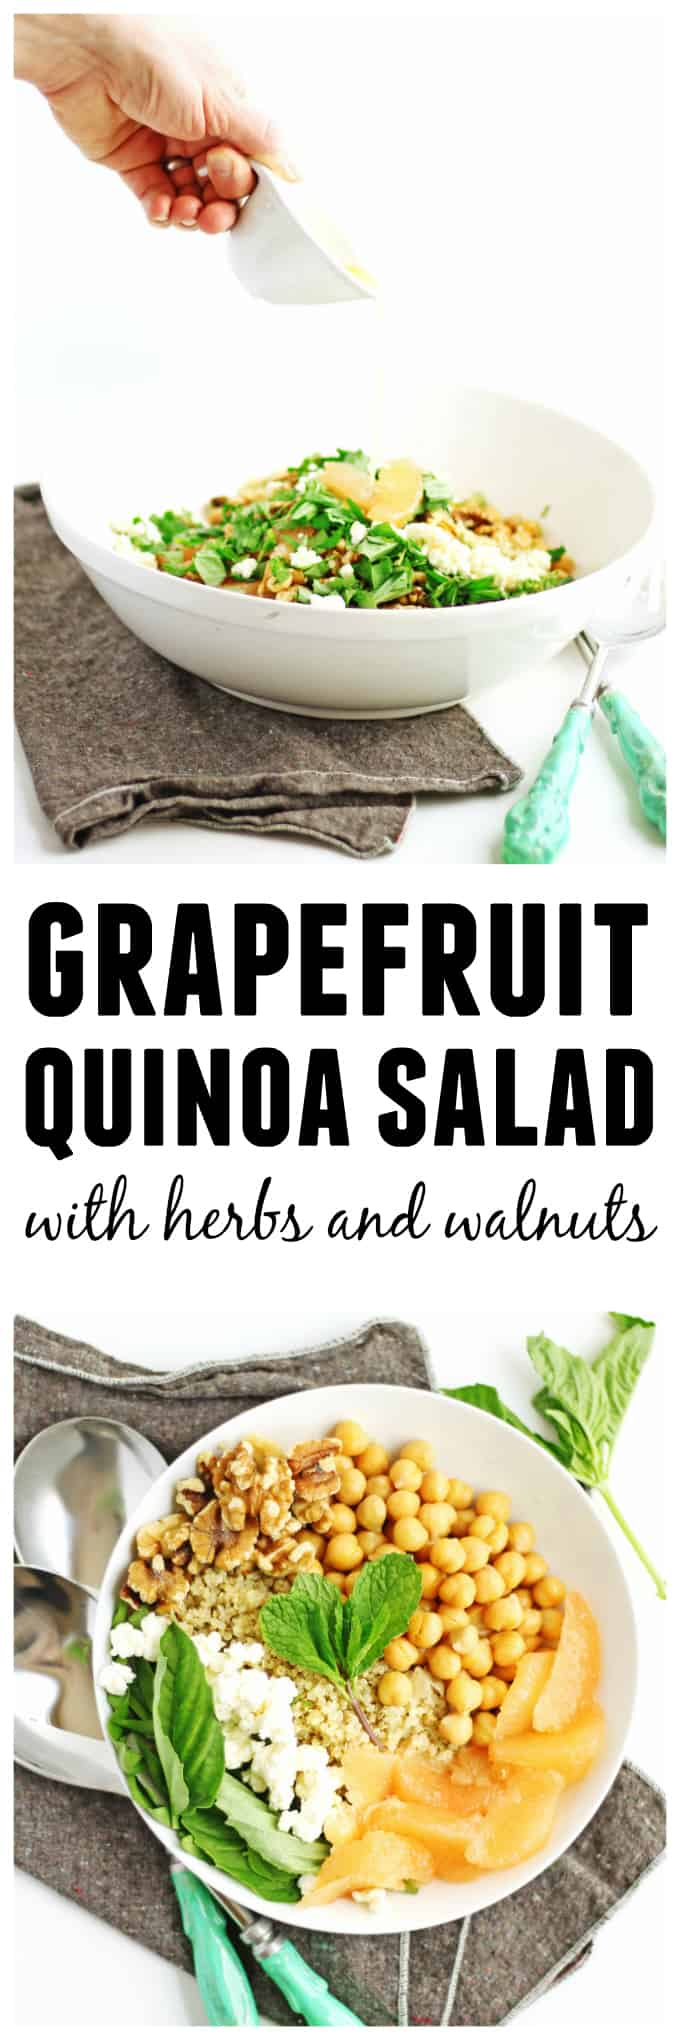 Easy grapefruit quinoa salad recipe! A bright, healthy, protein packed vegetarian salad your whole family will love. The perfect winter or spring lunch or dinner! Vegetarian, gluten free, and easily adapted to a vegan or paleo diet. // Rhubarbarians